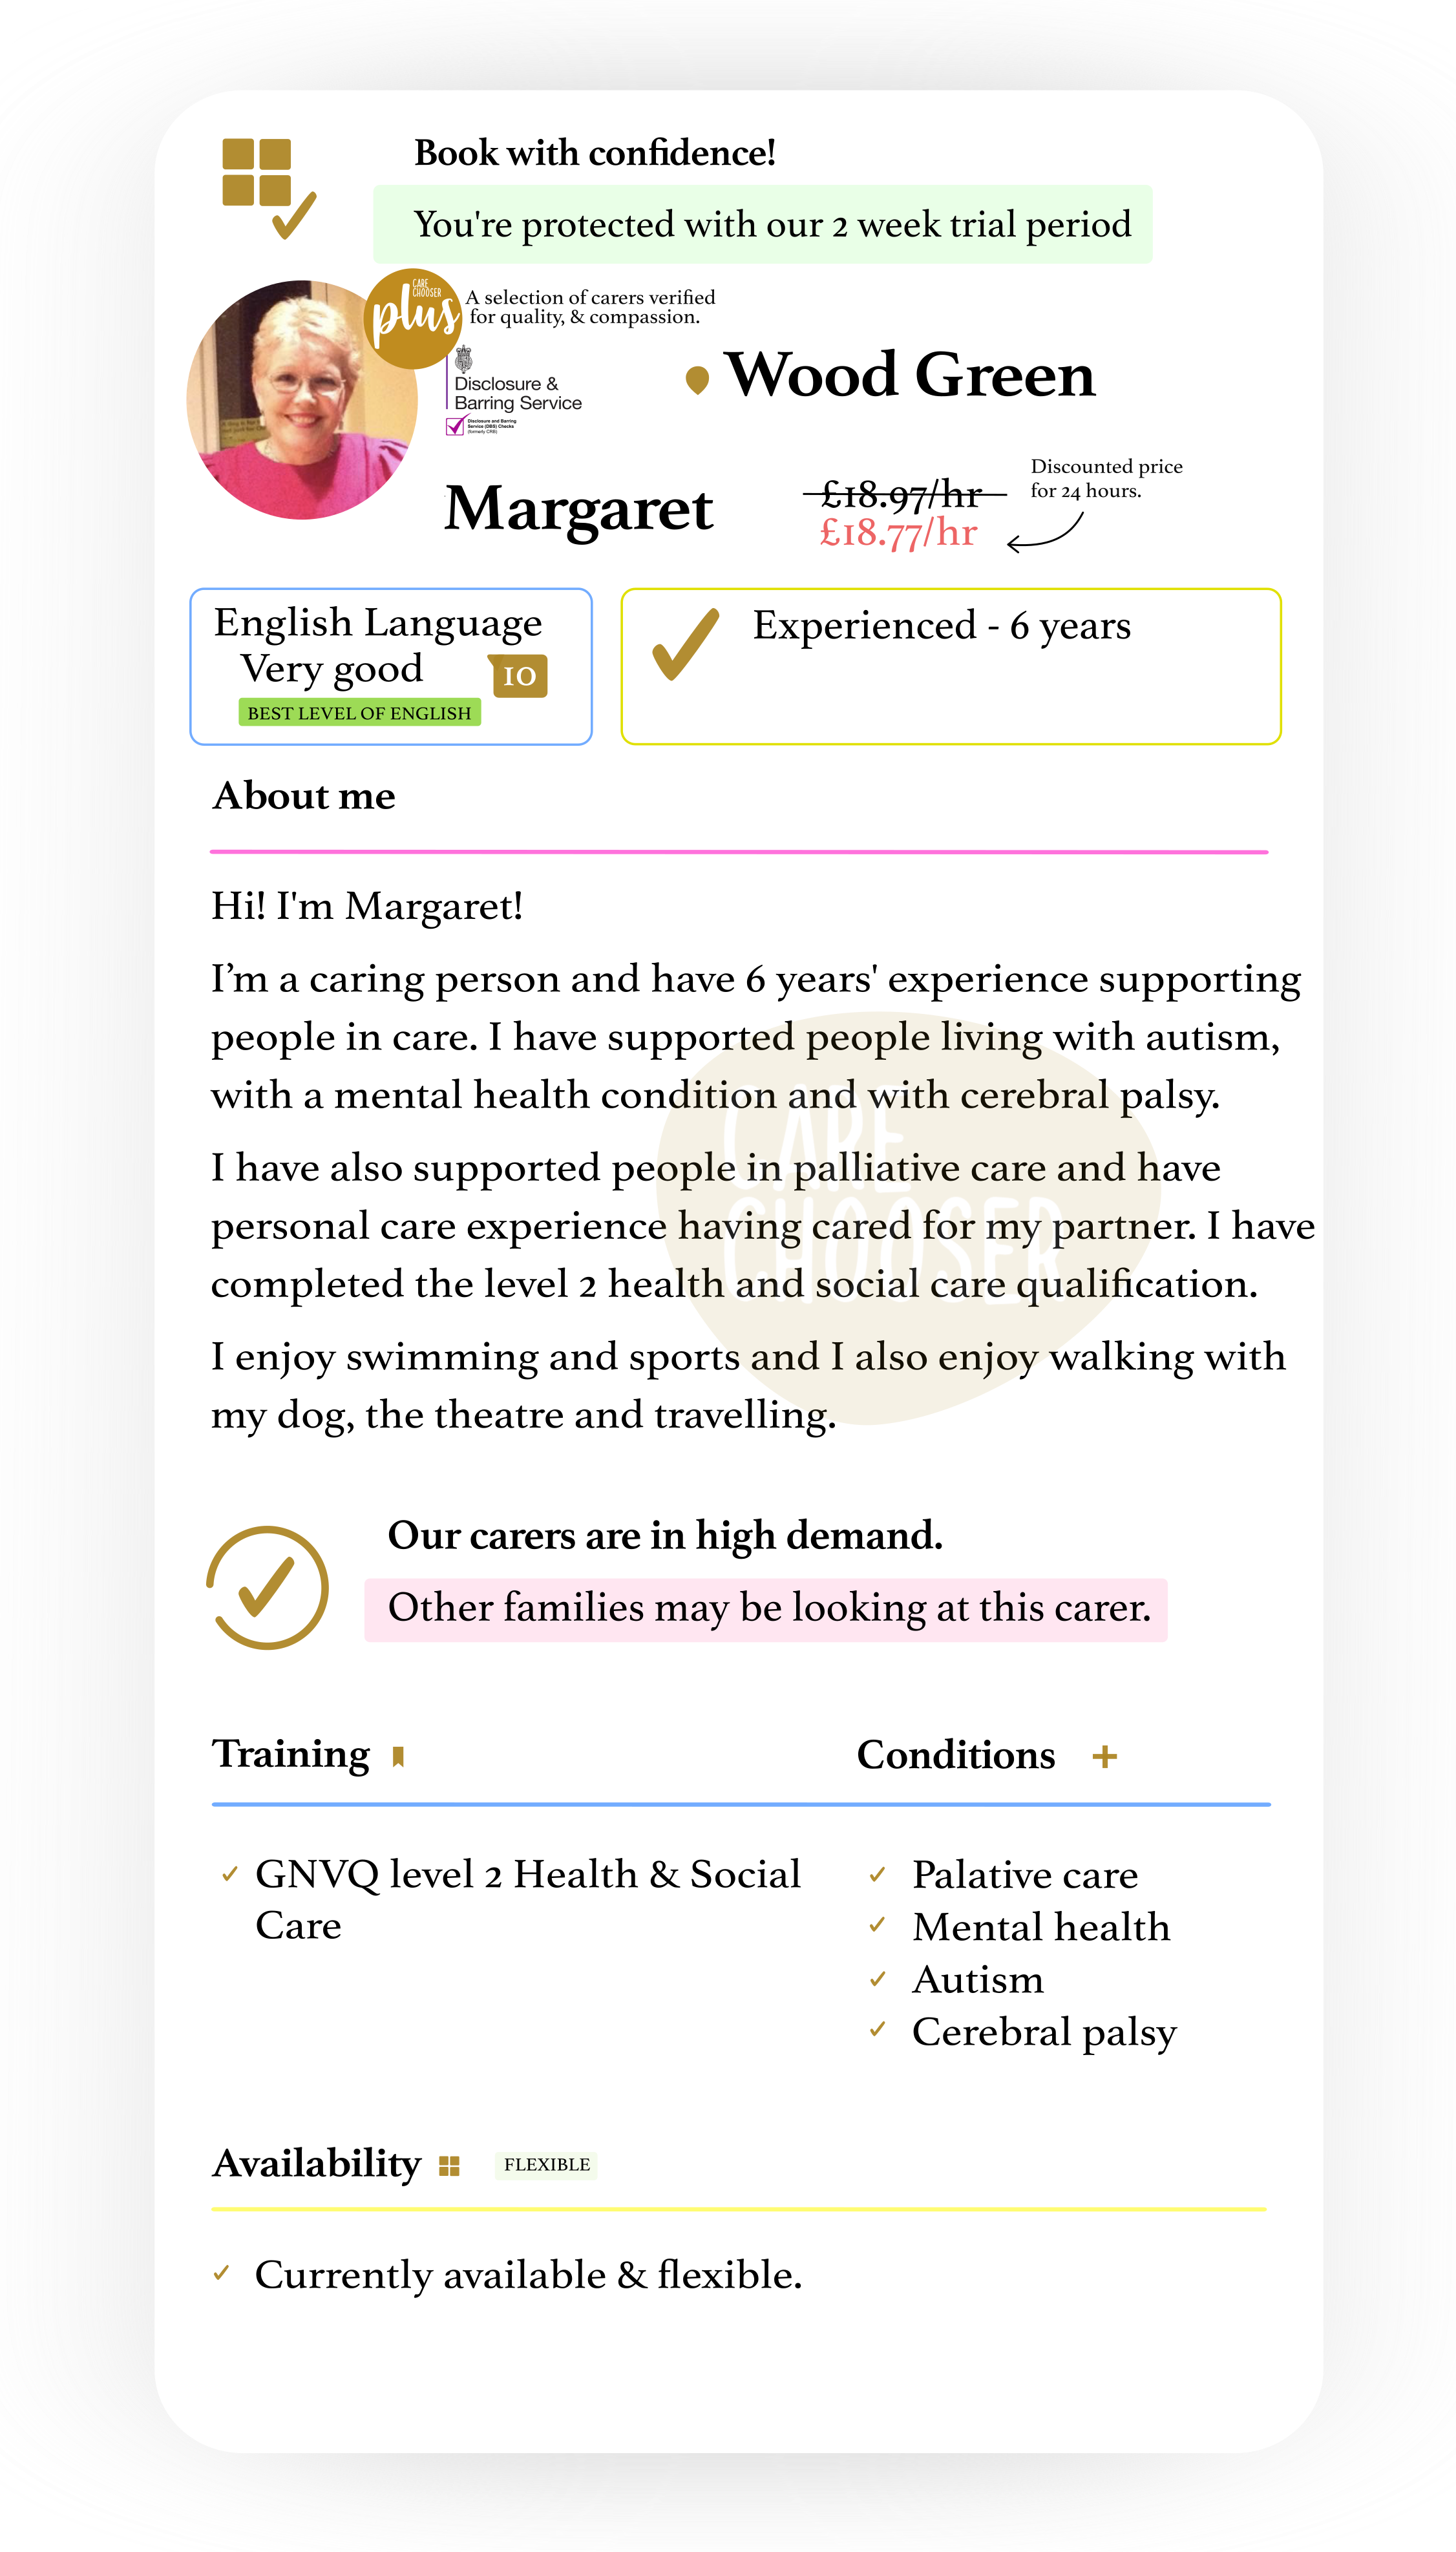 Margaret - home care in Wood Green.png